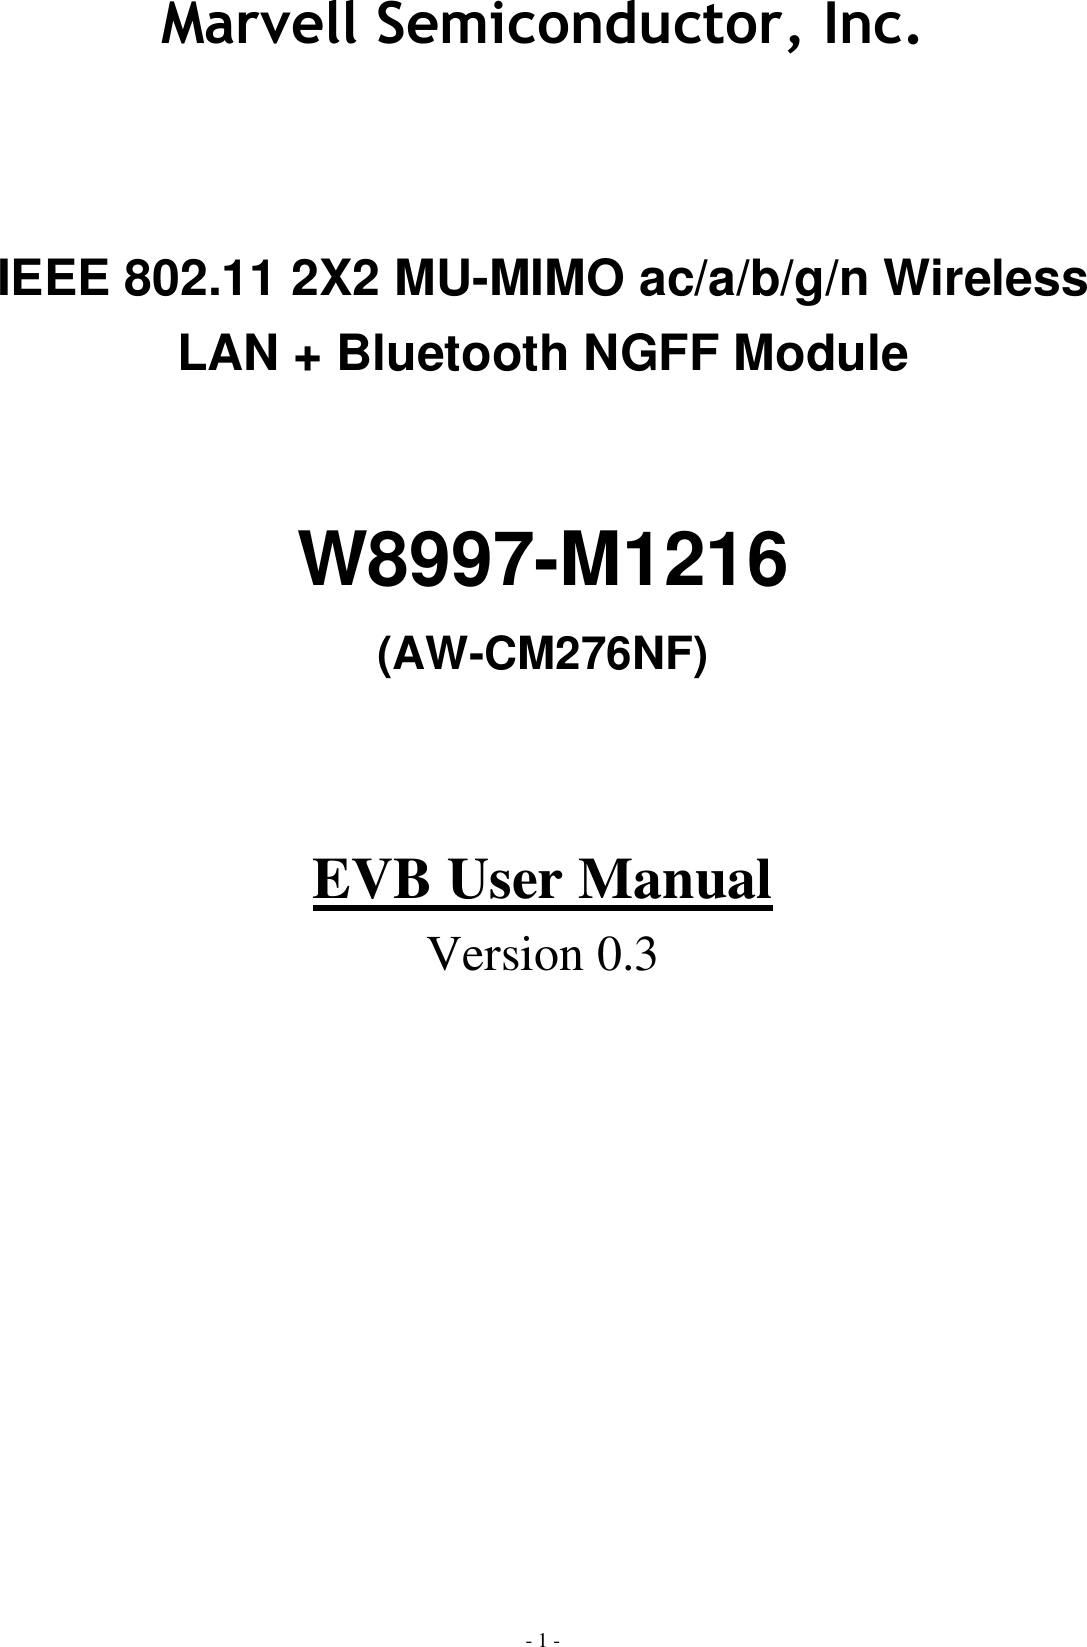 Marvell Semiconductor, Inc. - 1 -   IEEE 802.11 2X2 MU-MIMO ac/a/b/g/n Wireless LAN + Bluetooth NGFF Module  W8997-M1216 (AW-CM276NF)   EVB User Manual Version 0.3